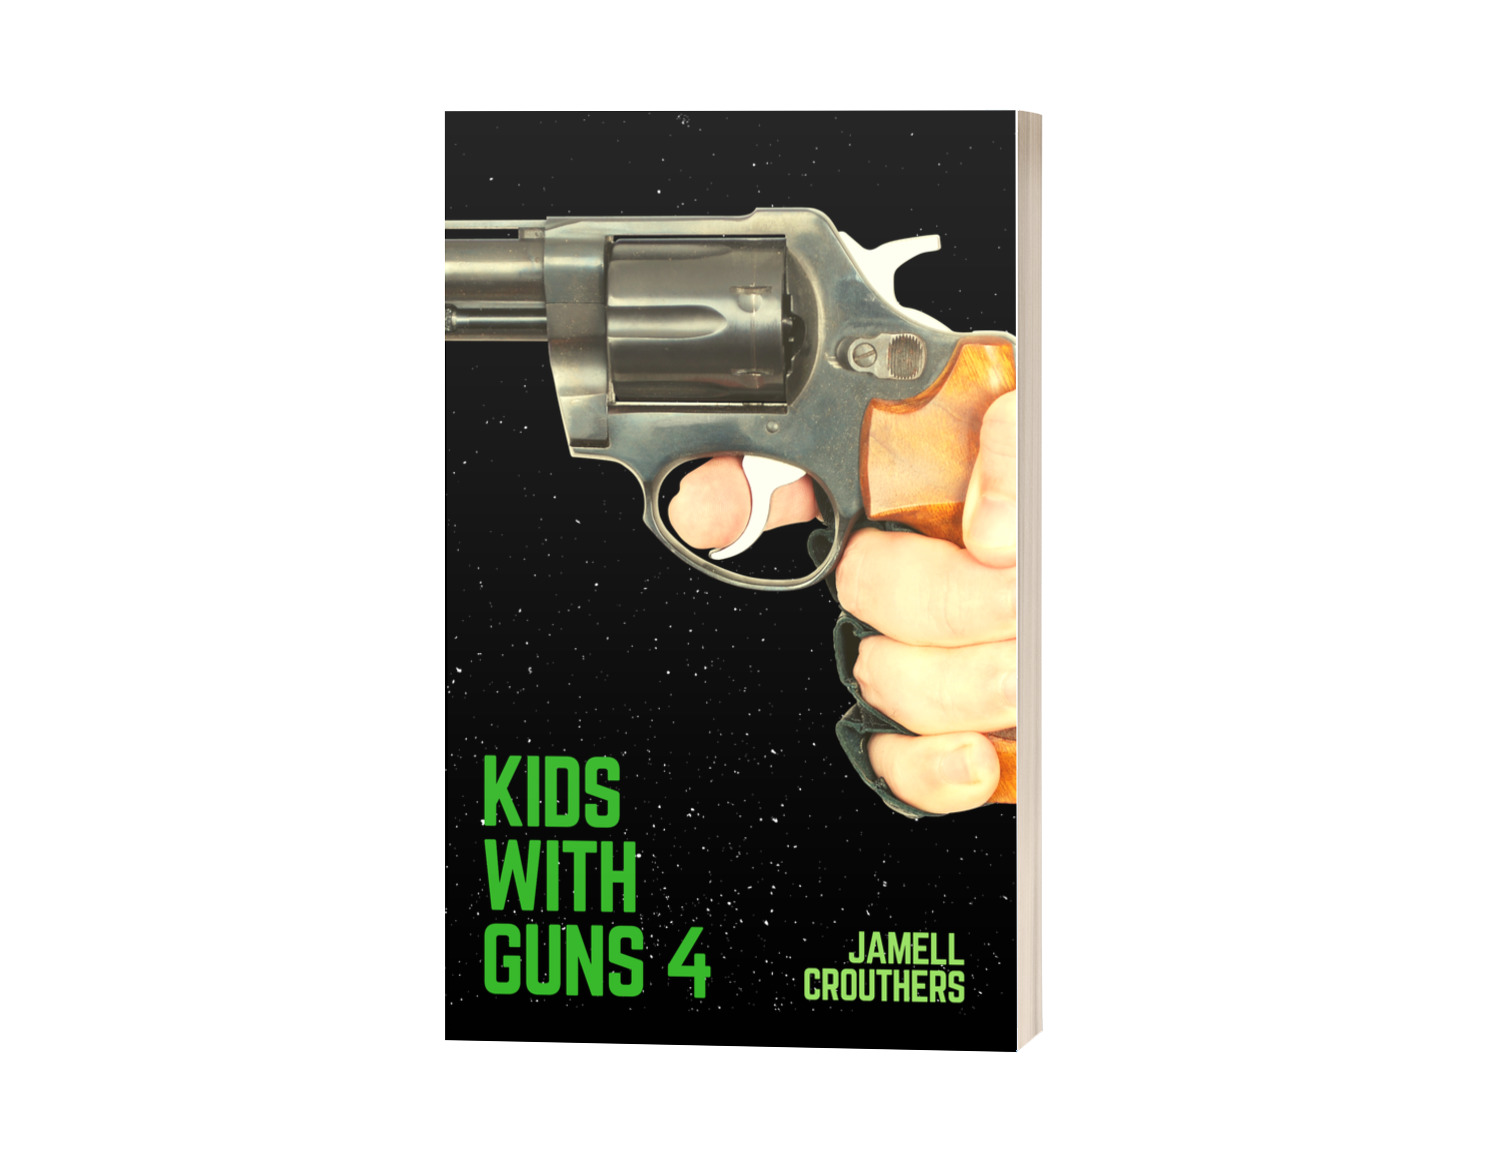 Kids With Guns Part 4 is after the trial and verdicts but there's some truths coming to light about what's going on with school shootings in America.